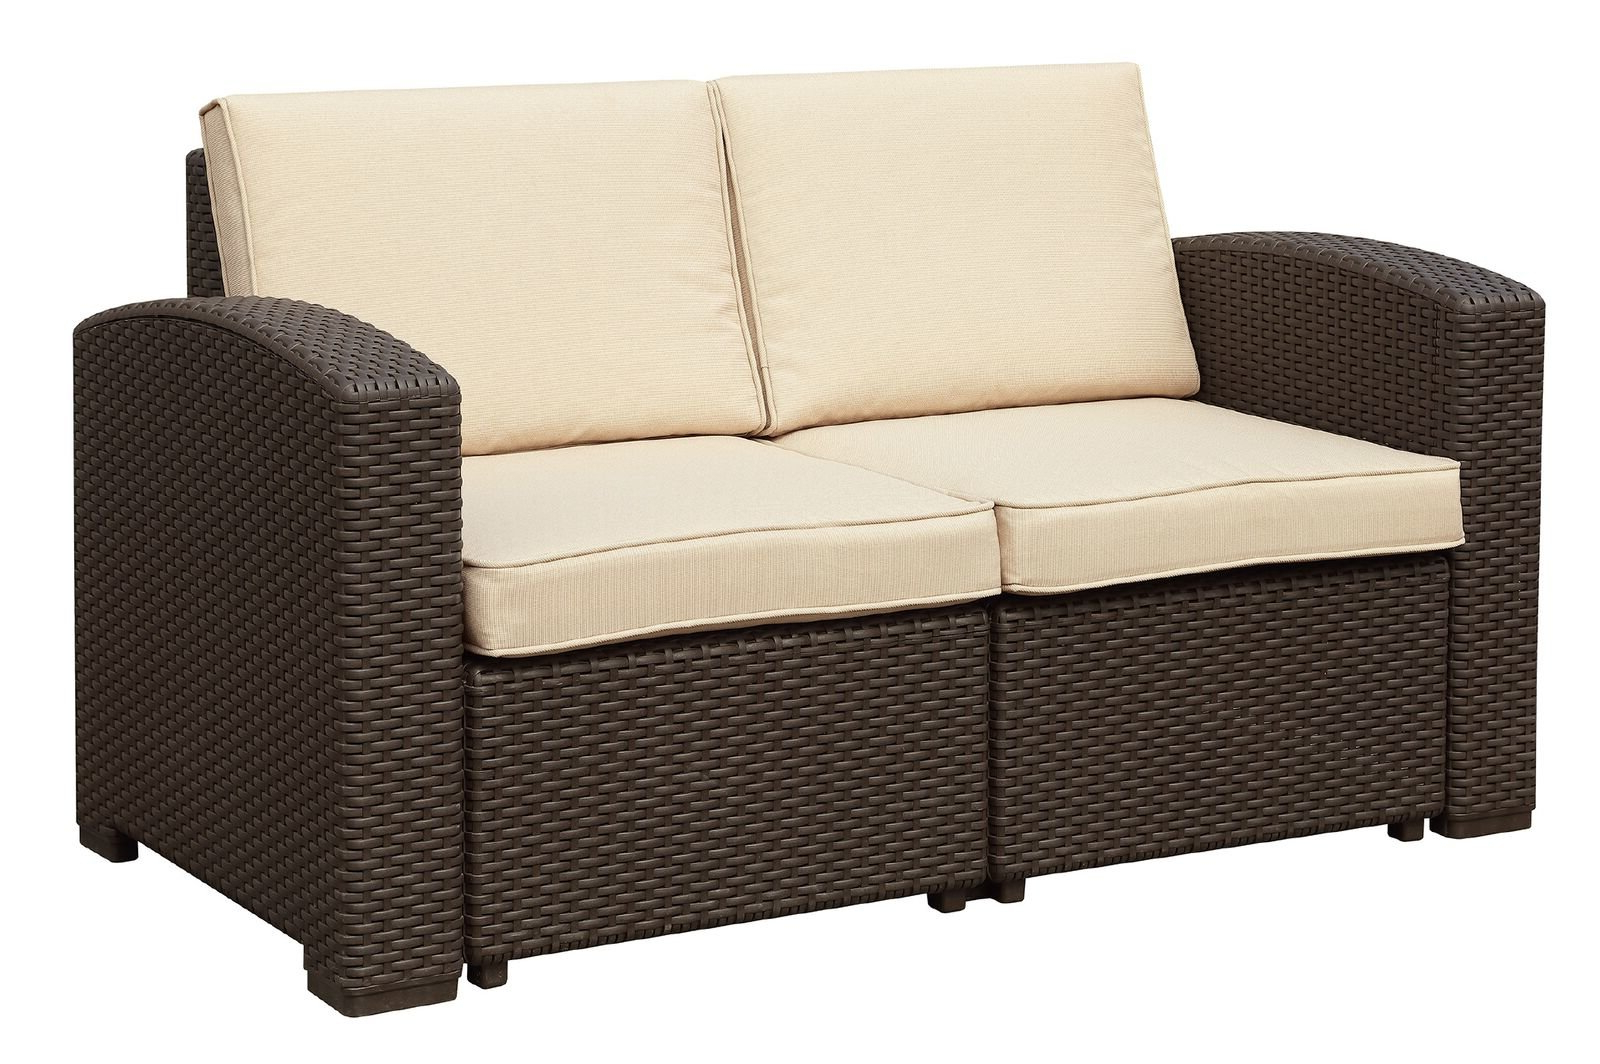 Famous Vardin Loveseats With Cushions With Regard To Ilka Loveseat With Cushions (View 11 of 20)